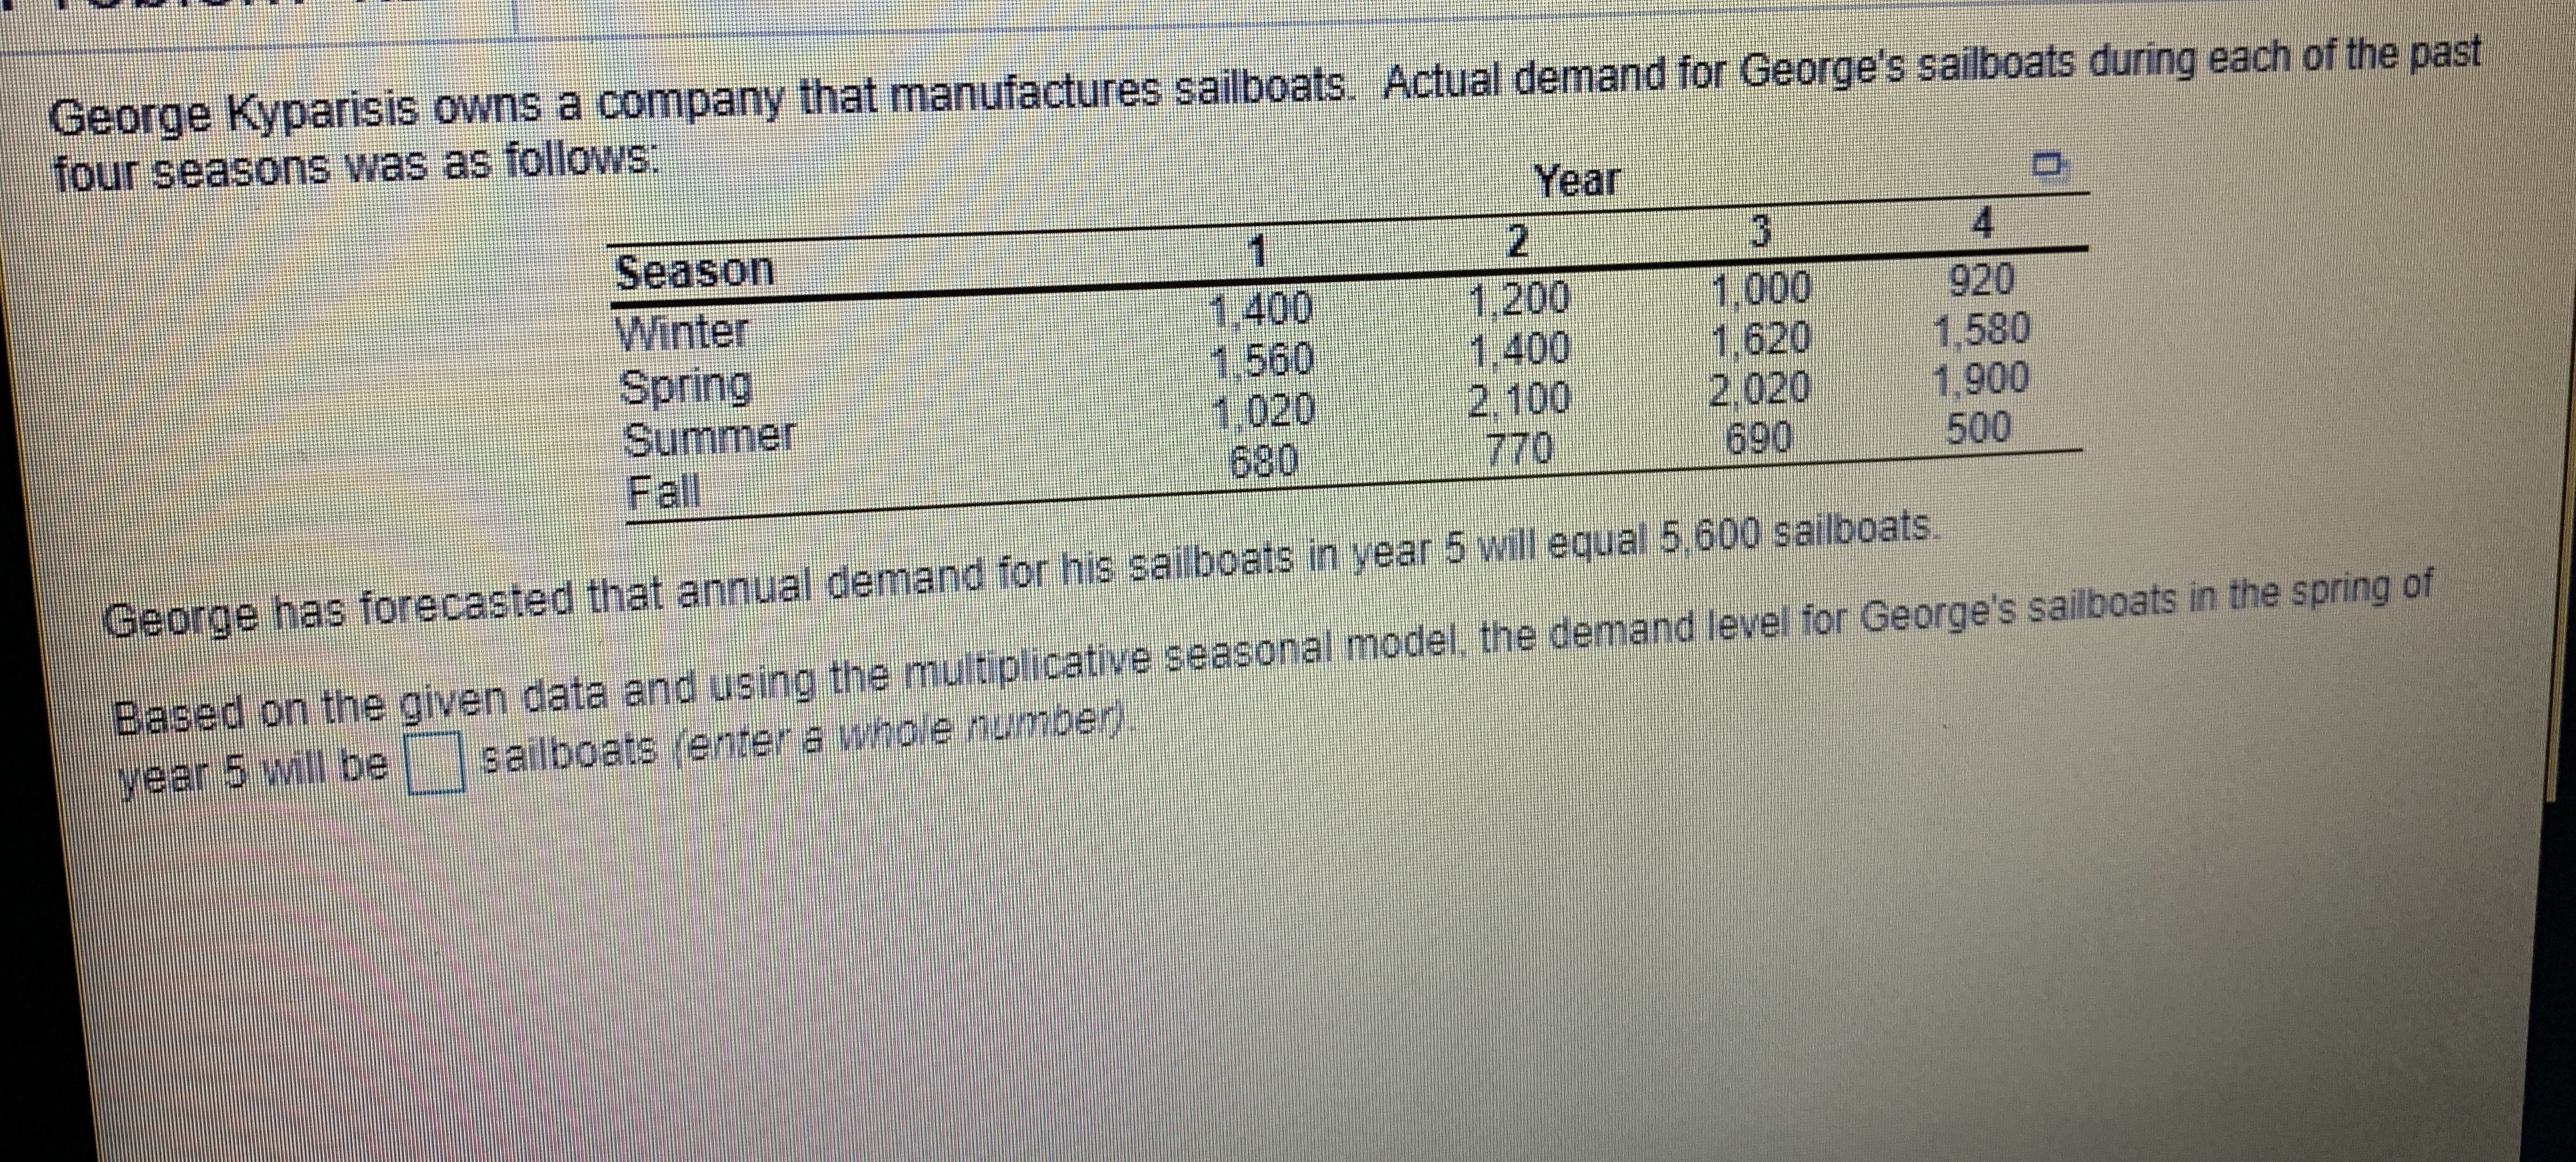 George Kyparisis owns a company that manufactures sailboats. Actual demand for George's sailboats during each of the past four seasons was as follows: Year Season Winter Spring Summer Fall 1,000 1,400 1.560 1,020 680 1,200 1.400 920 1,6201,580 2.1002,020 1,900 770690500 George has forecasted that annual demand for his sailboats in year 5 will equal 5,600 sailboats. Based on the given data and using the multiplicative seasonal model, the demand level for George's saliboats in the spring of year 5 will besailboats (enter a whole number)